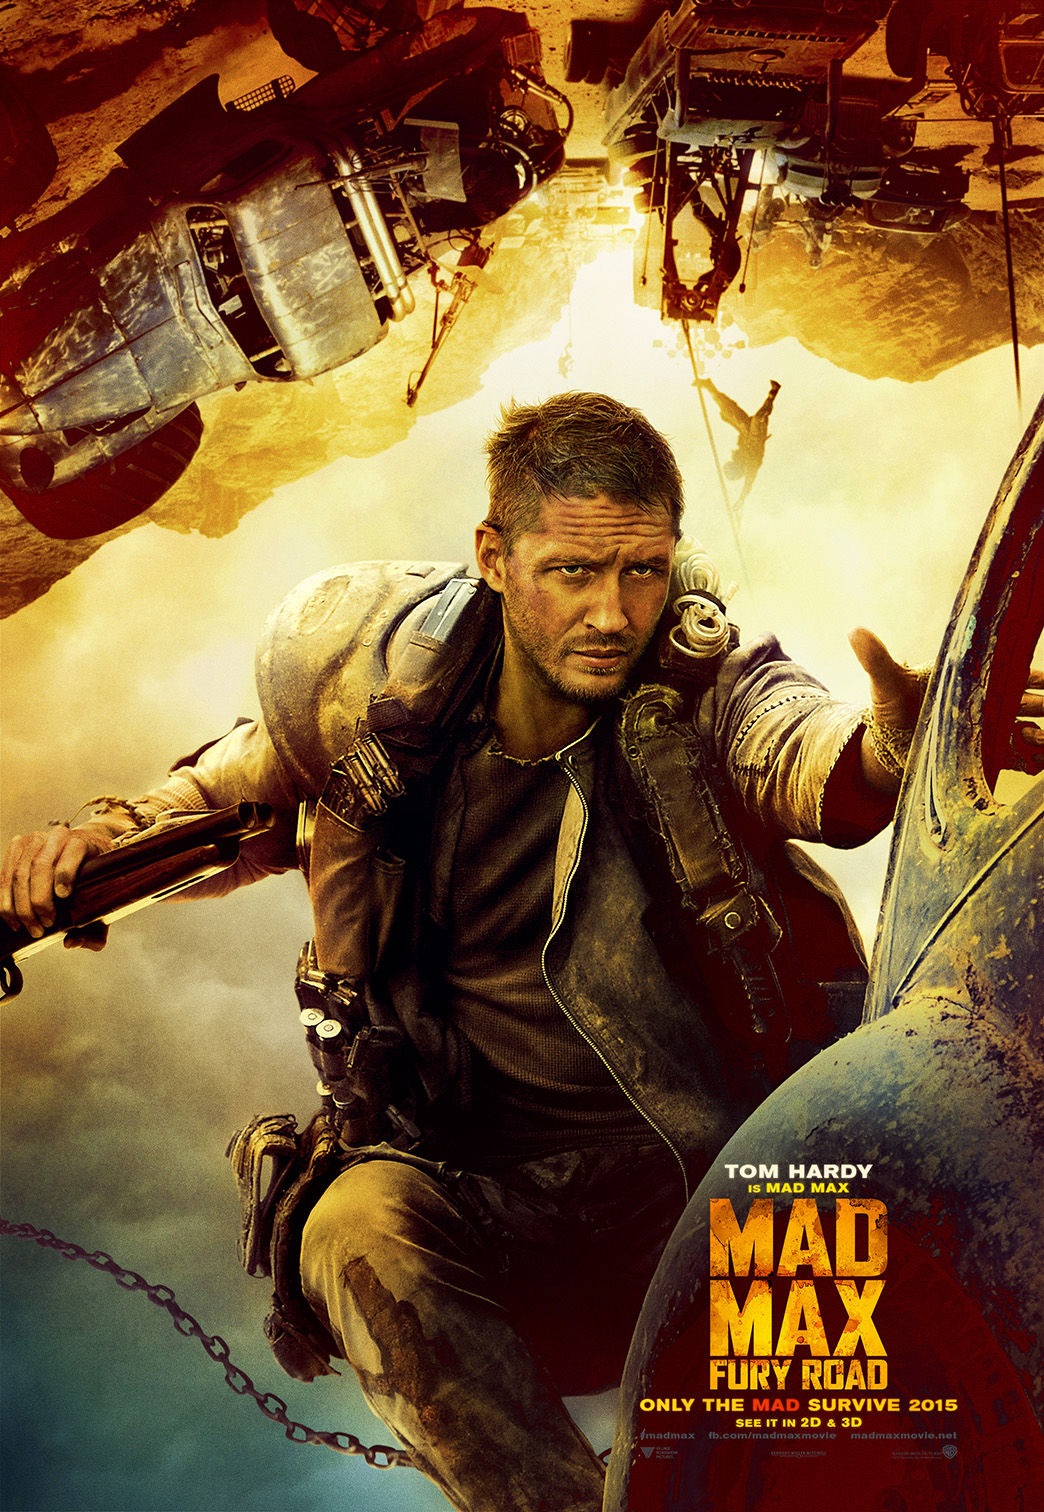 Mad Max 4 : Fury Road (2015) Movie Preview | Starseeker.com